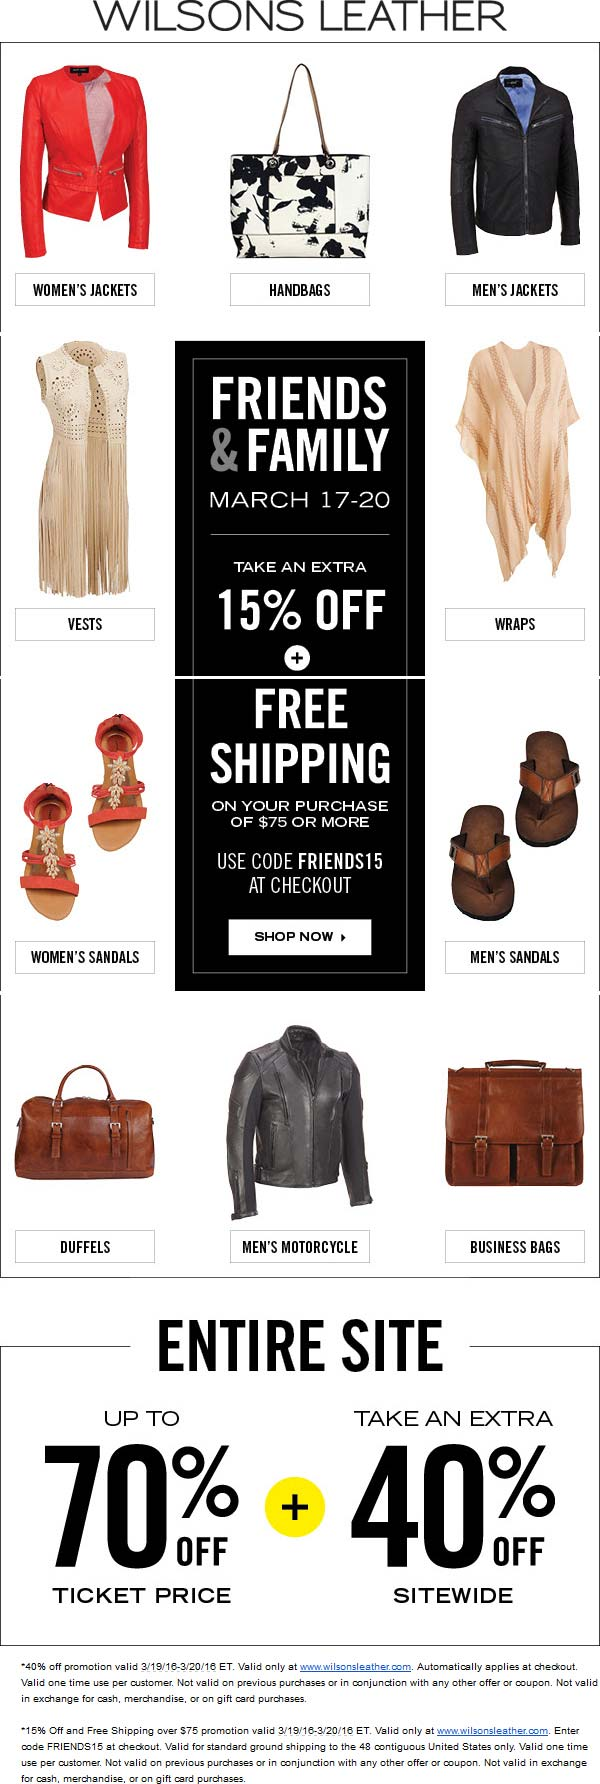 Wilsons Leather Coupon January 2017 15% off & more at Wilsons Leather, or 40%+ online via promo code FRIENDS15